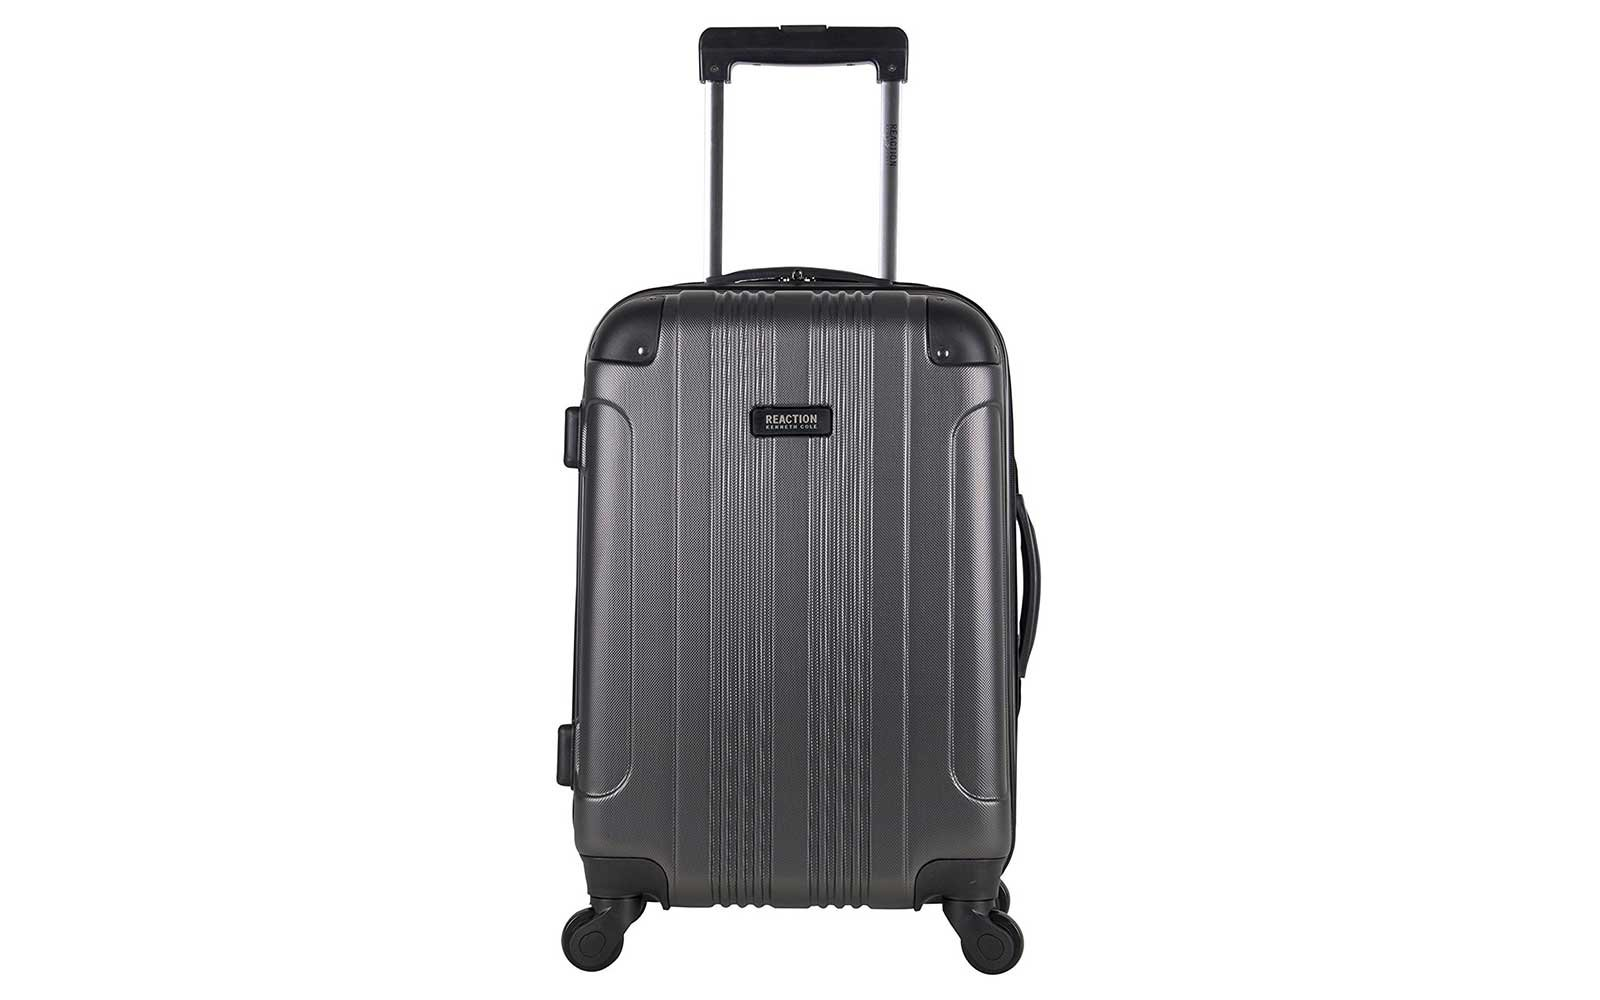 Kenneth Cole suitcase